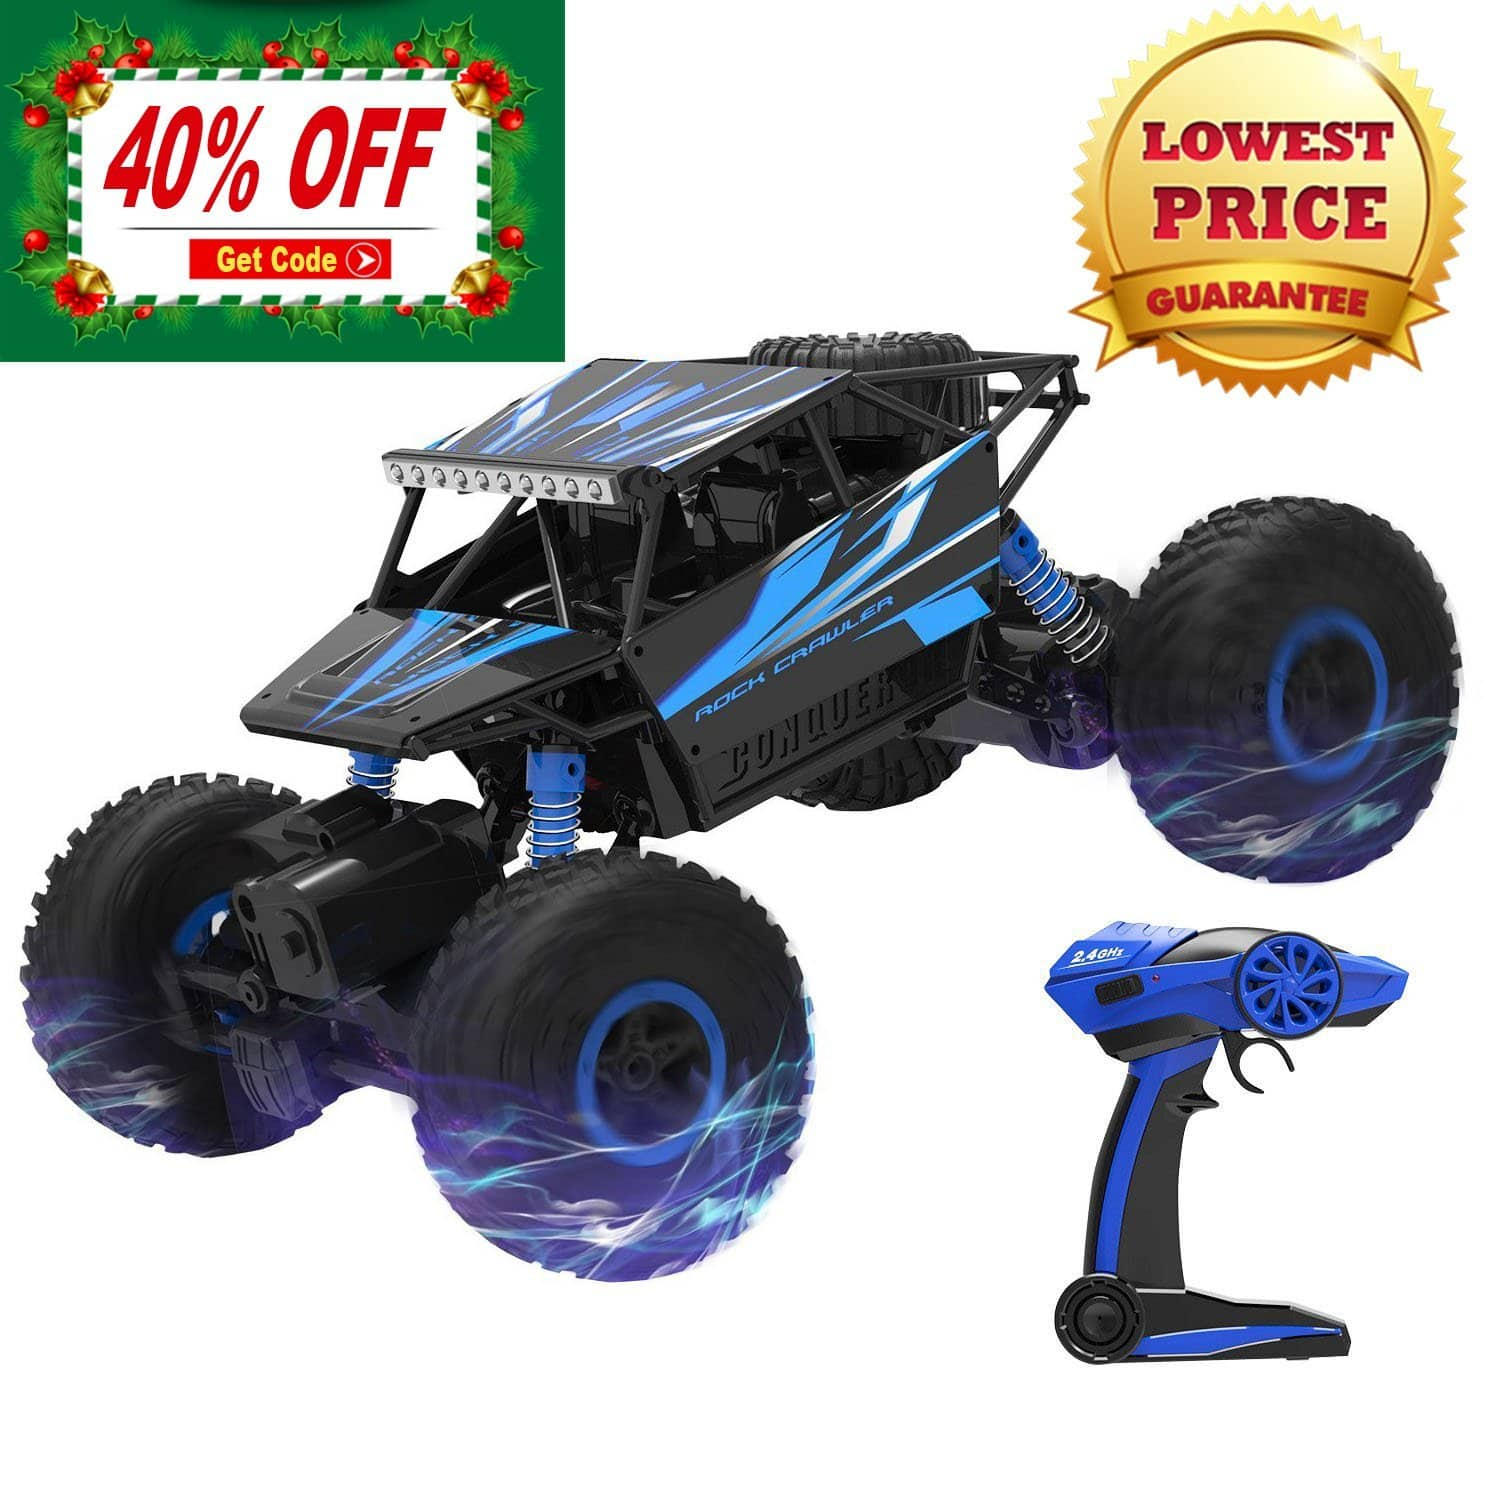 50% Off - Rock Crawler Remote Control 4x4 Off-Road Christmas Gift 1:18 Scale 100M 4WD Powerful High Speed Monster Truck 20$ Today $20